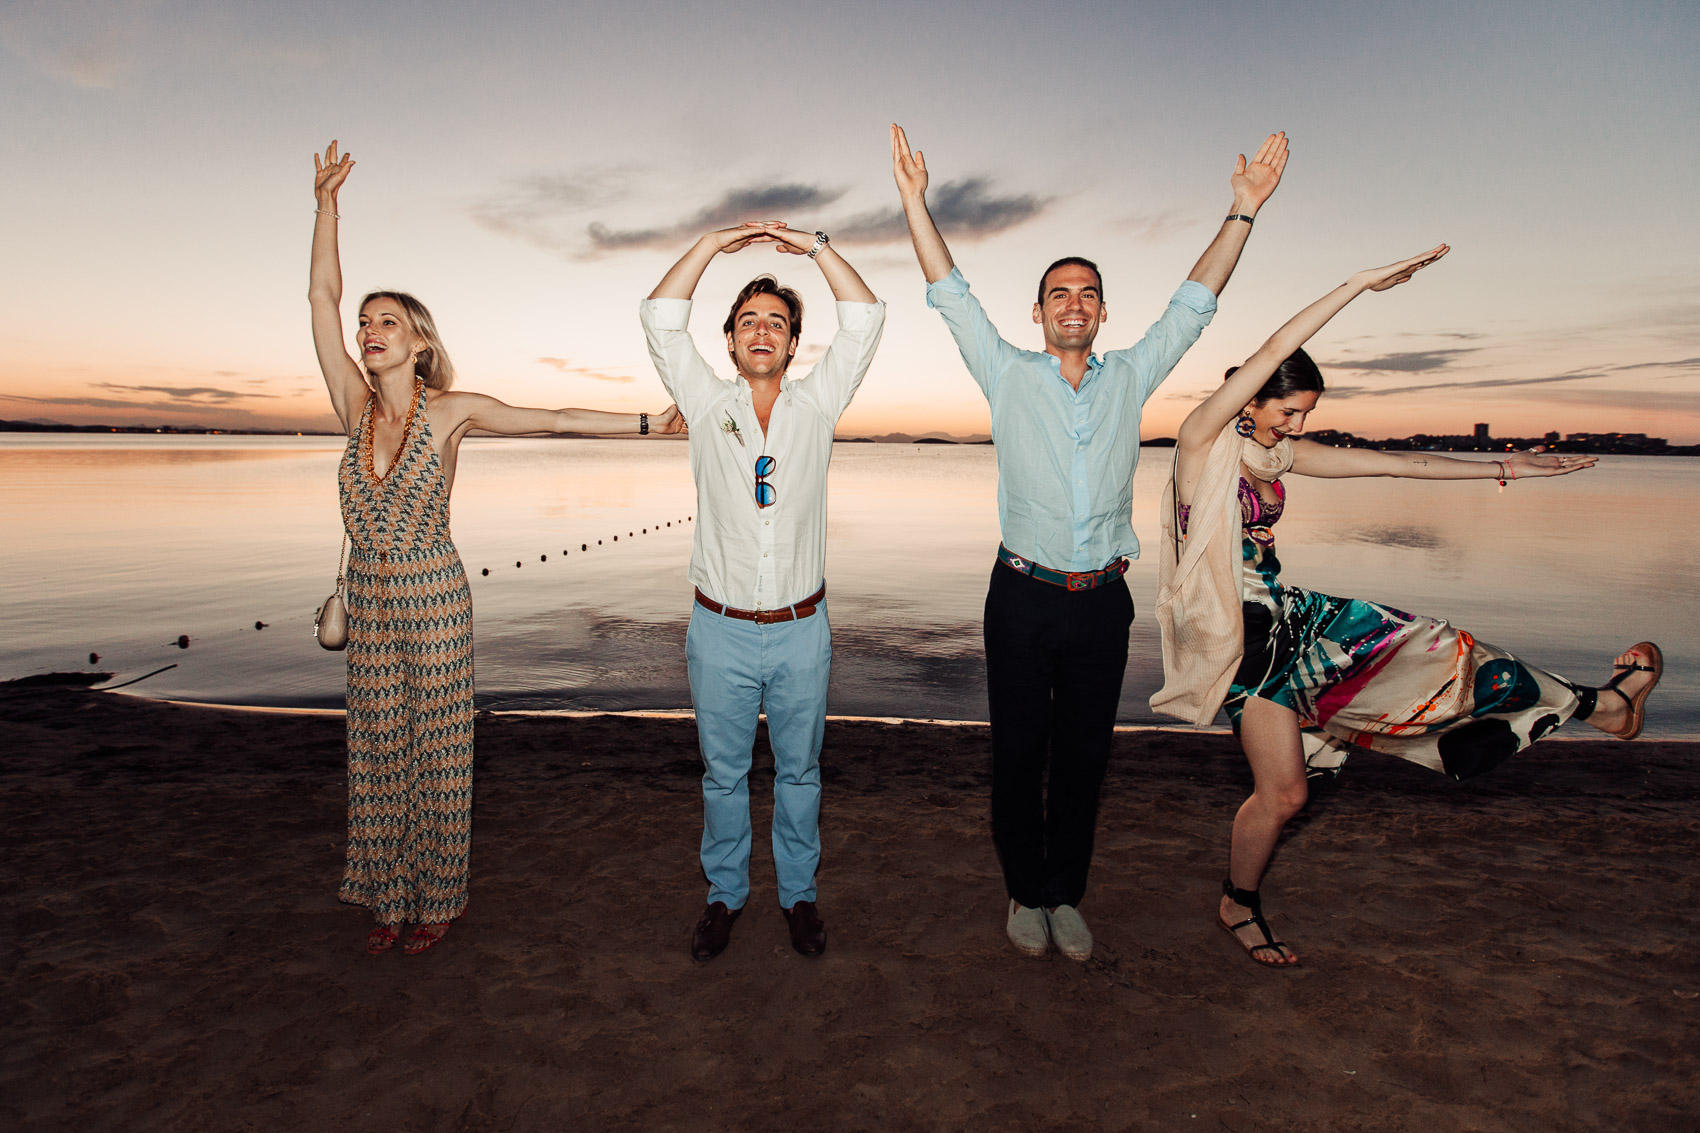 love amigos beach invitados cielo figuras photography